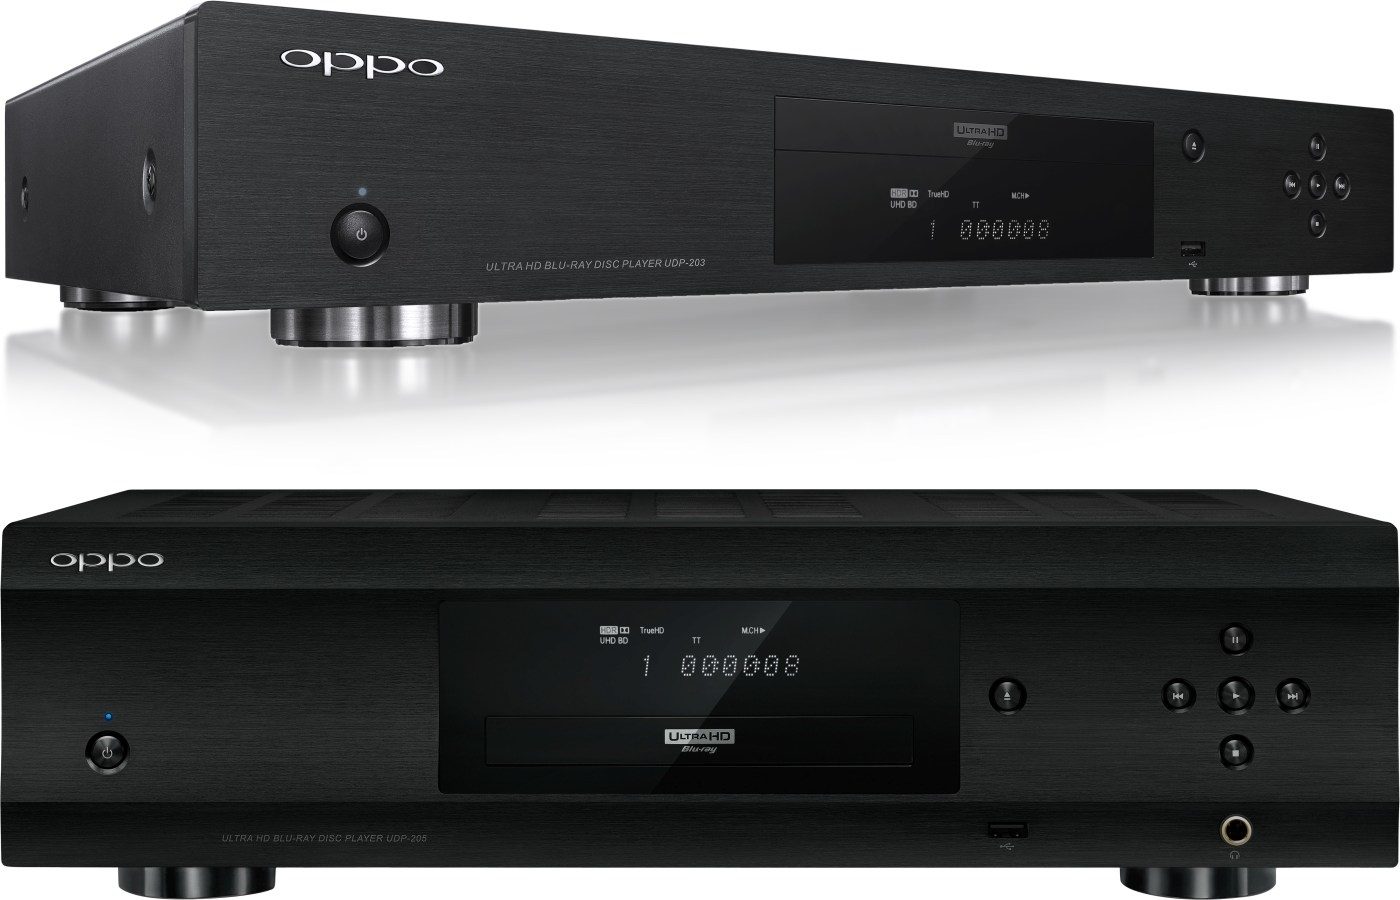 Oppo Blu-ray players are the first with Dolby Vision HDR